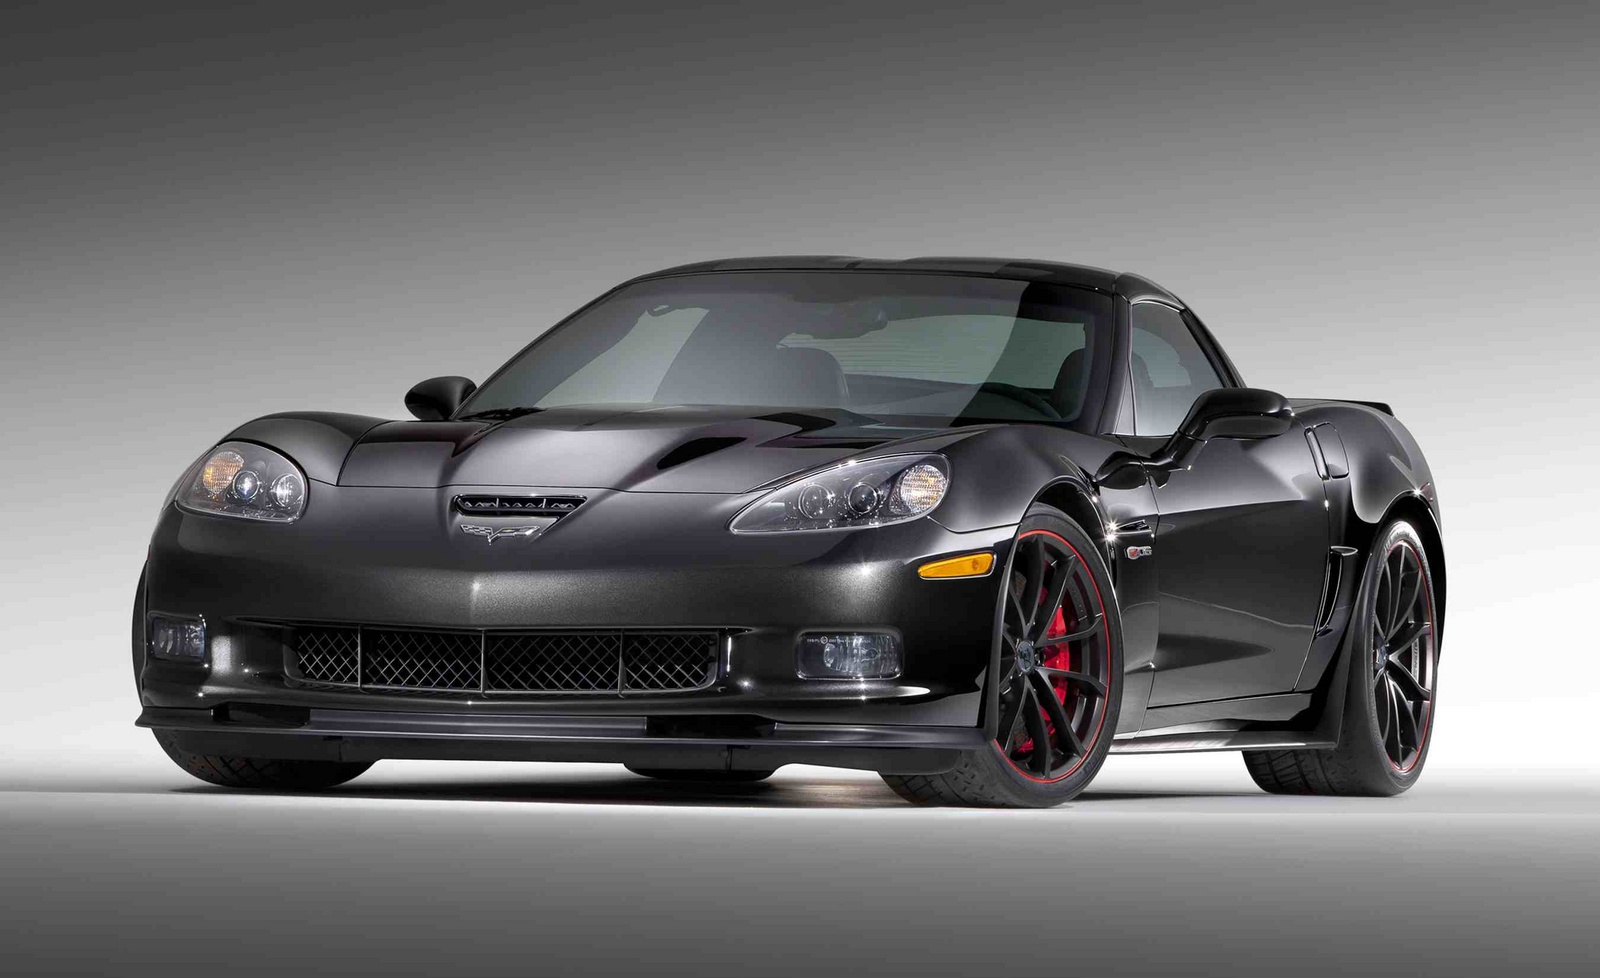 Home / Research / Chevrolet / Corvette / 2012